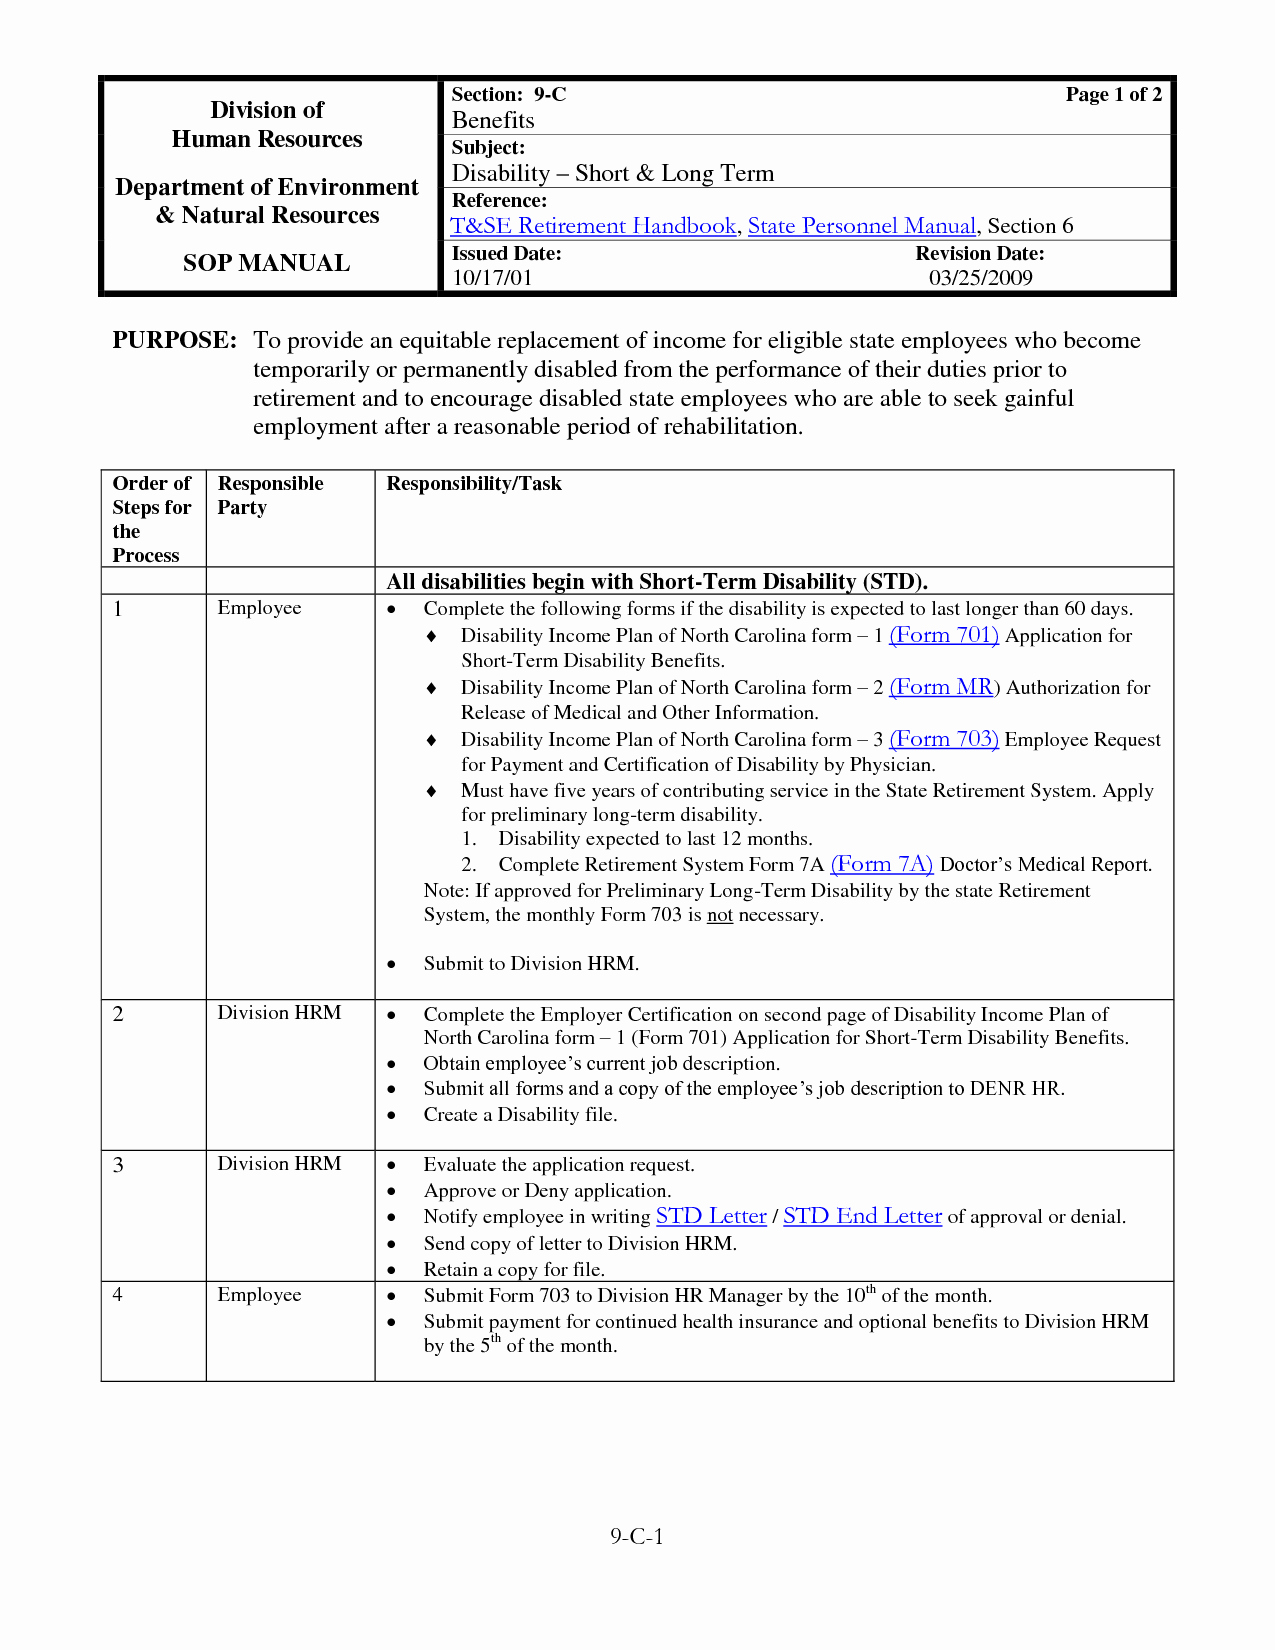 40 Free Fice Procedures Manual Template Policy and